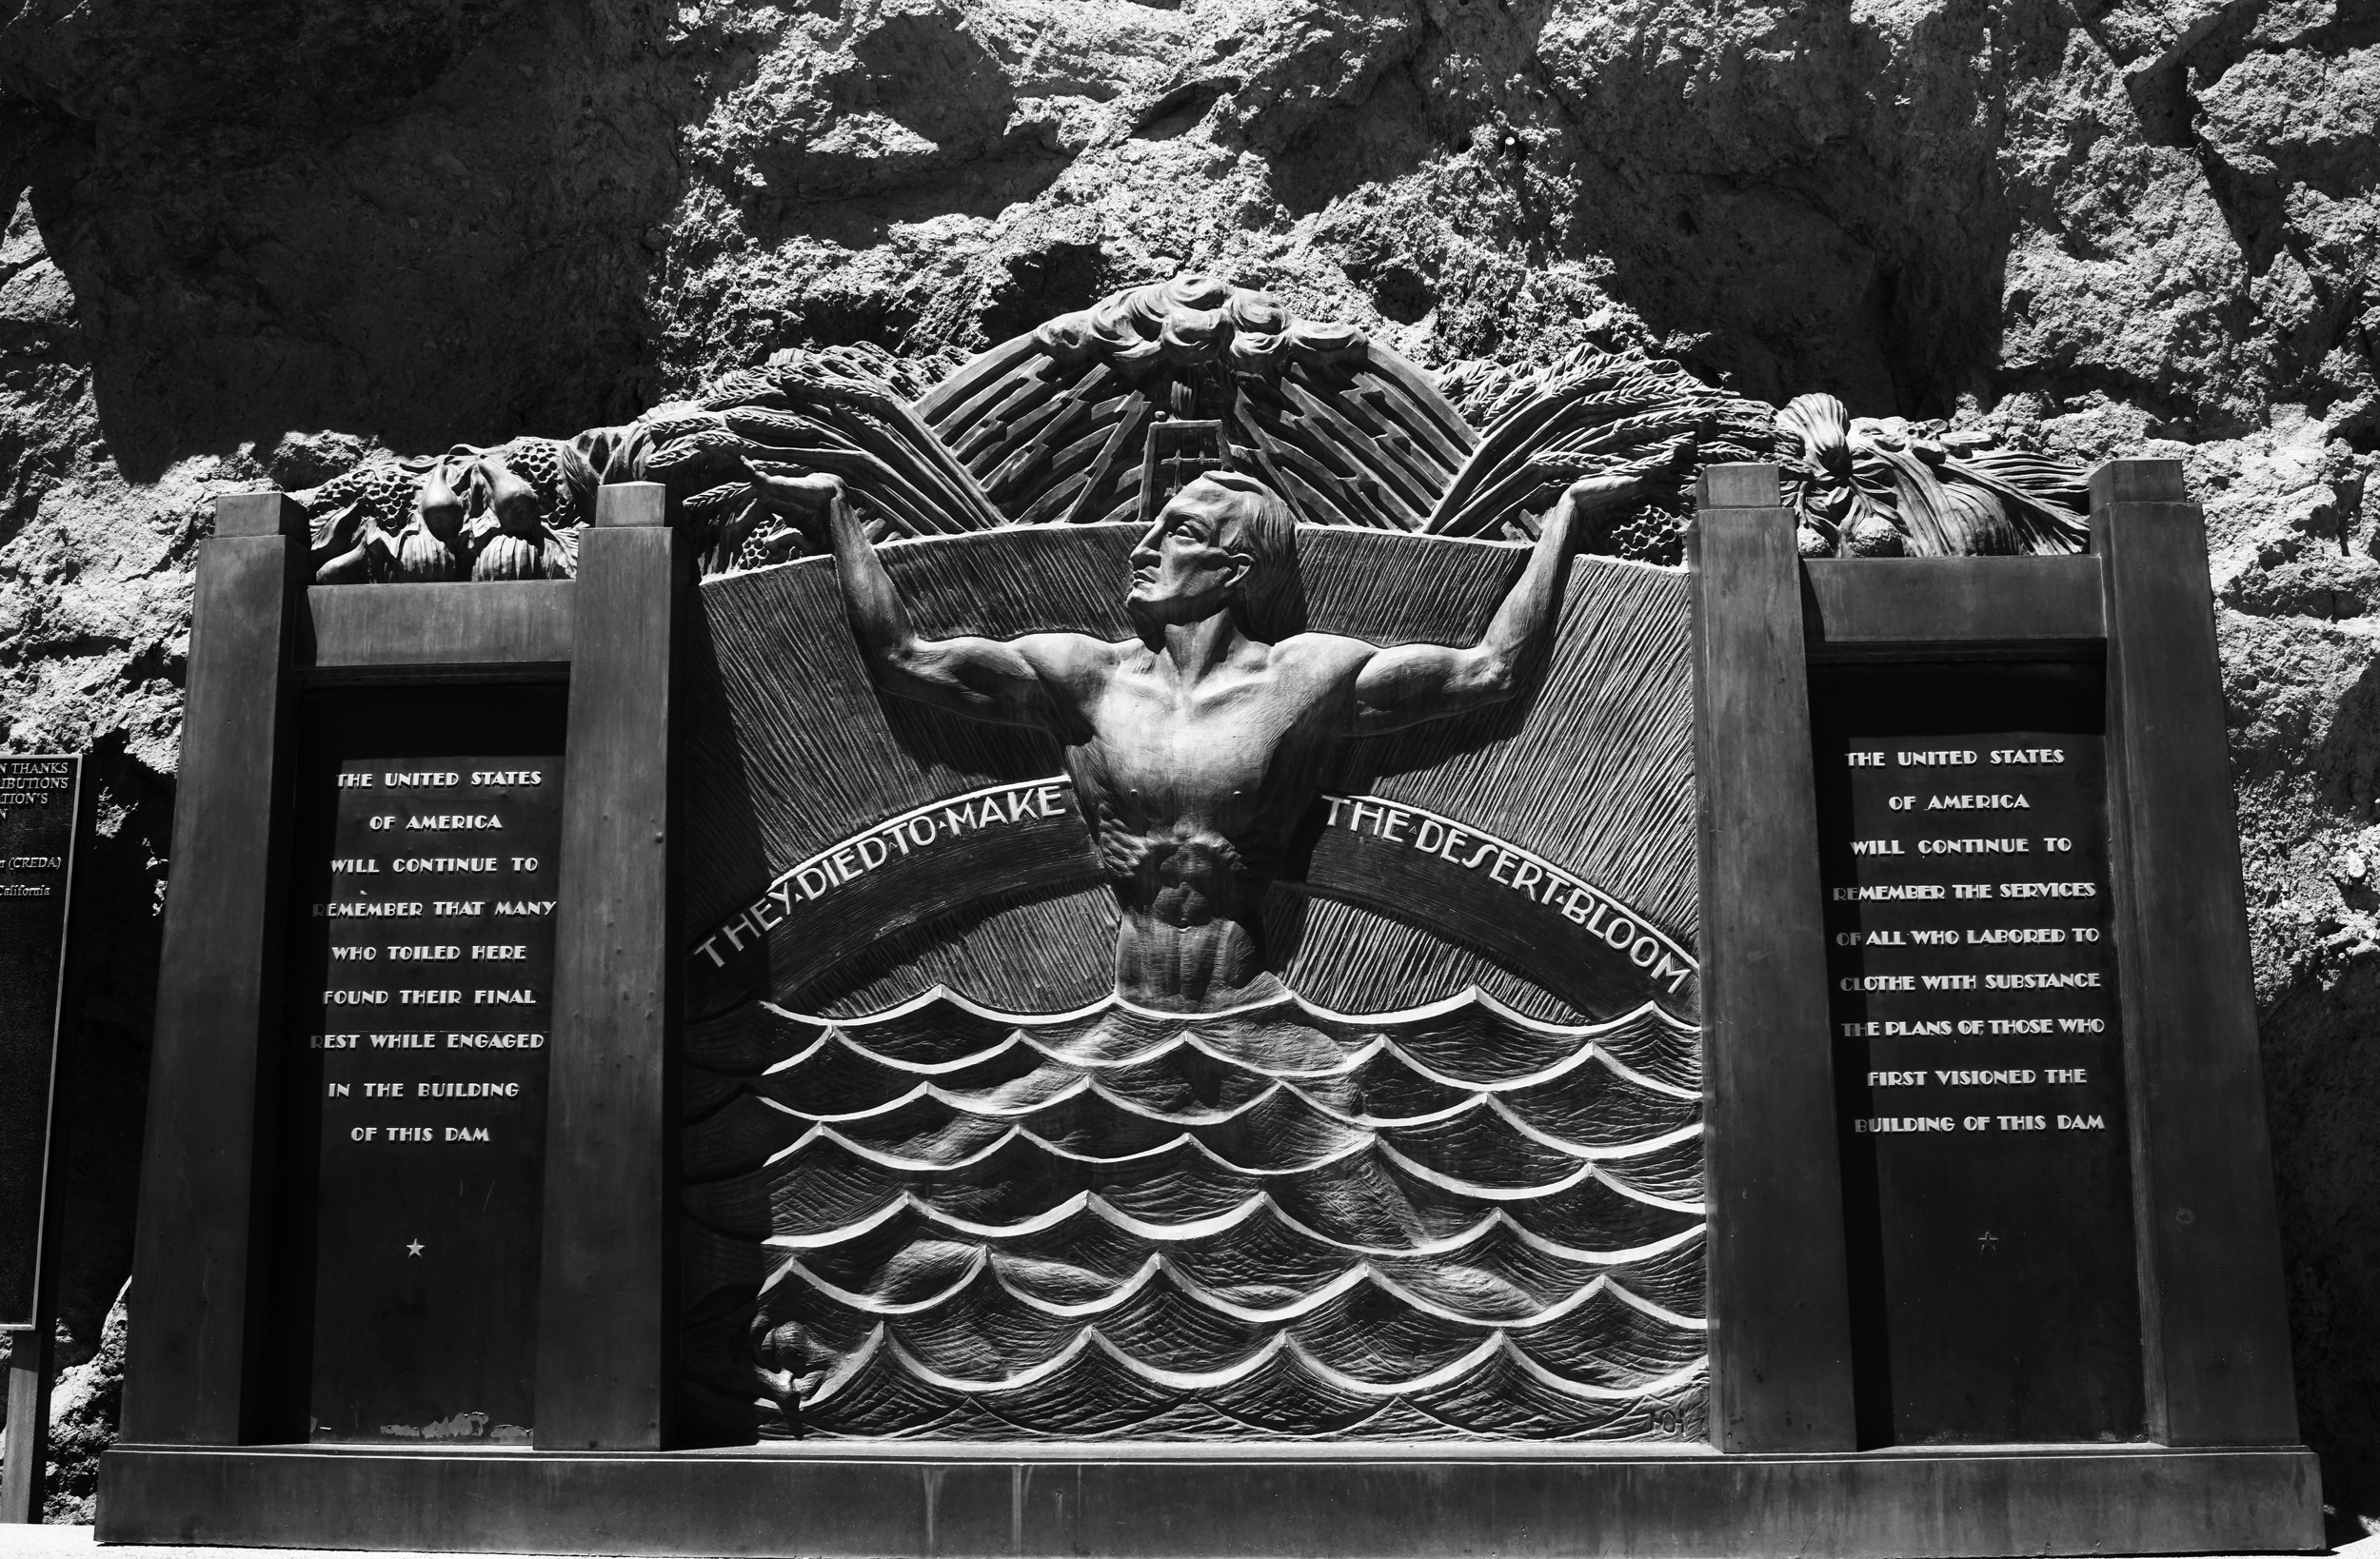 """They died to make the desert bloom"" a power inscription reads on the memorial for those who died building the Hoover Dam.  Photo: Trey Takahashi"